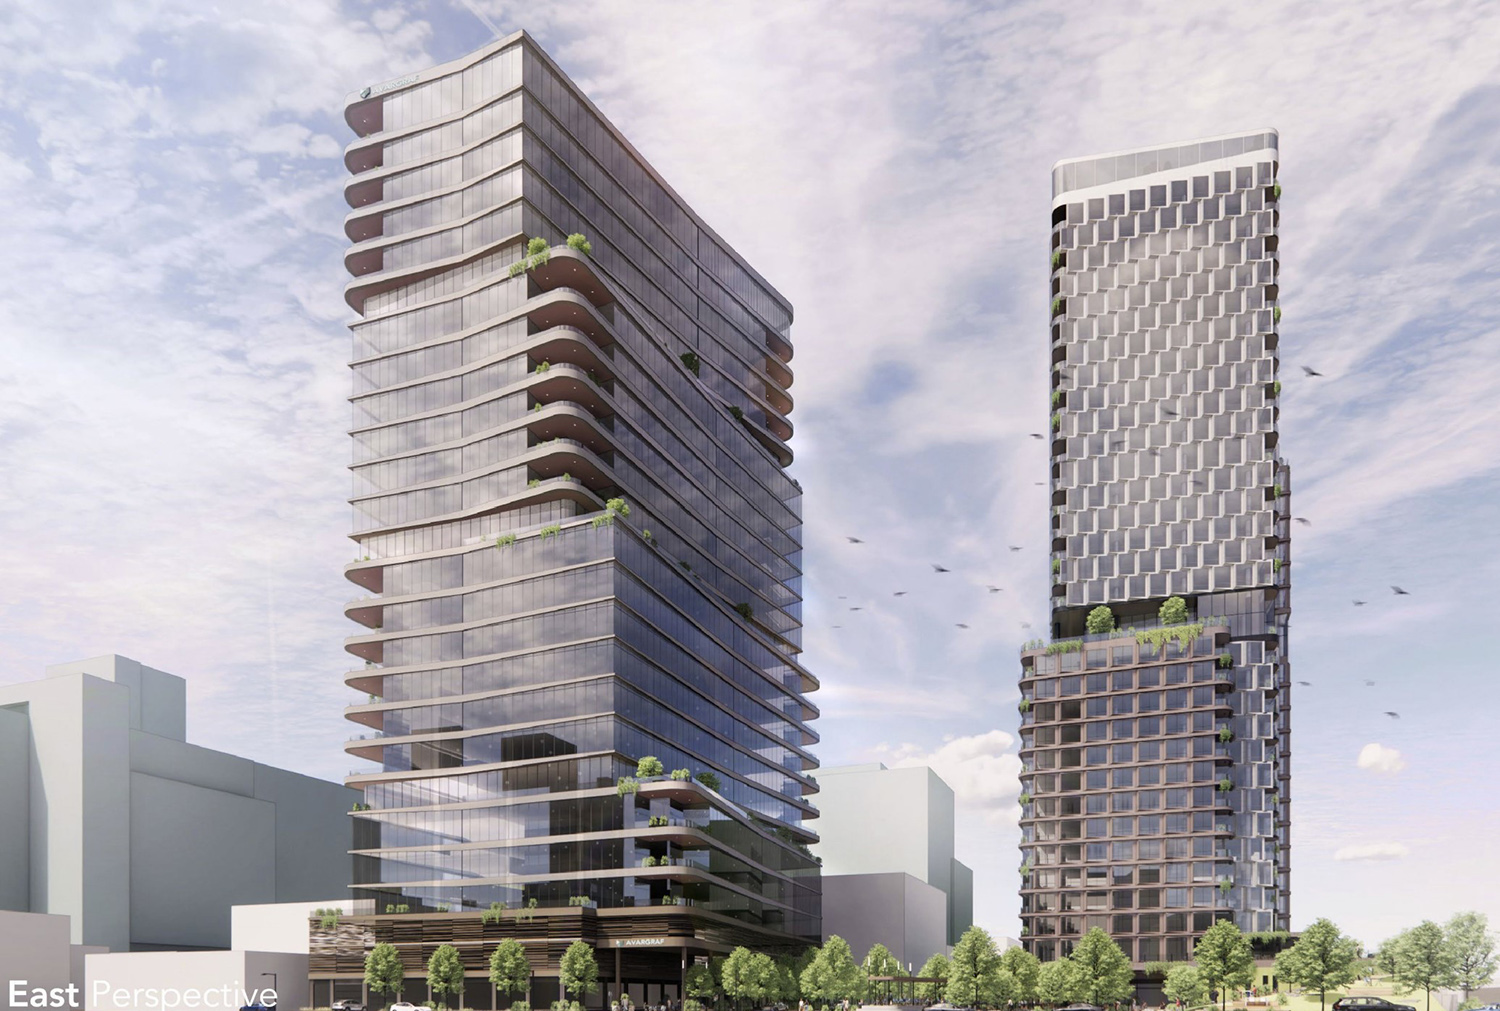 1112 W Carroll Avenue and 315 N May Street. Rendering by ESG Architects